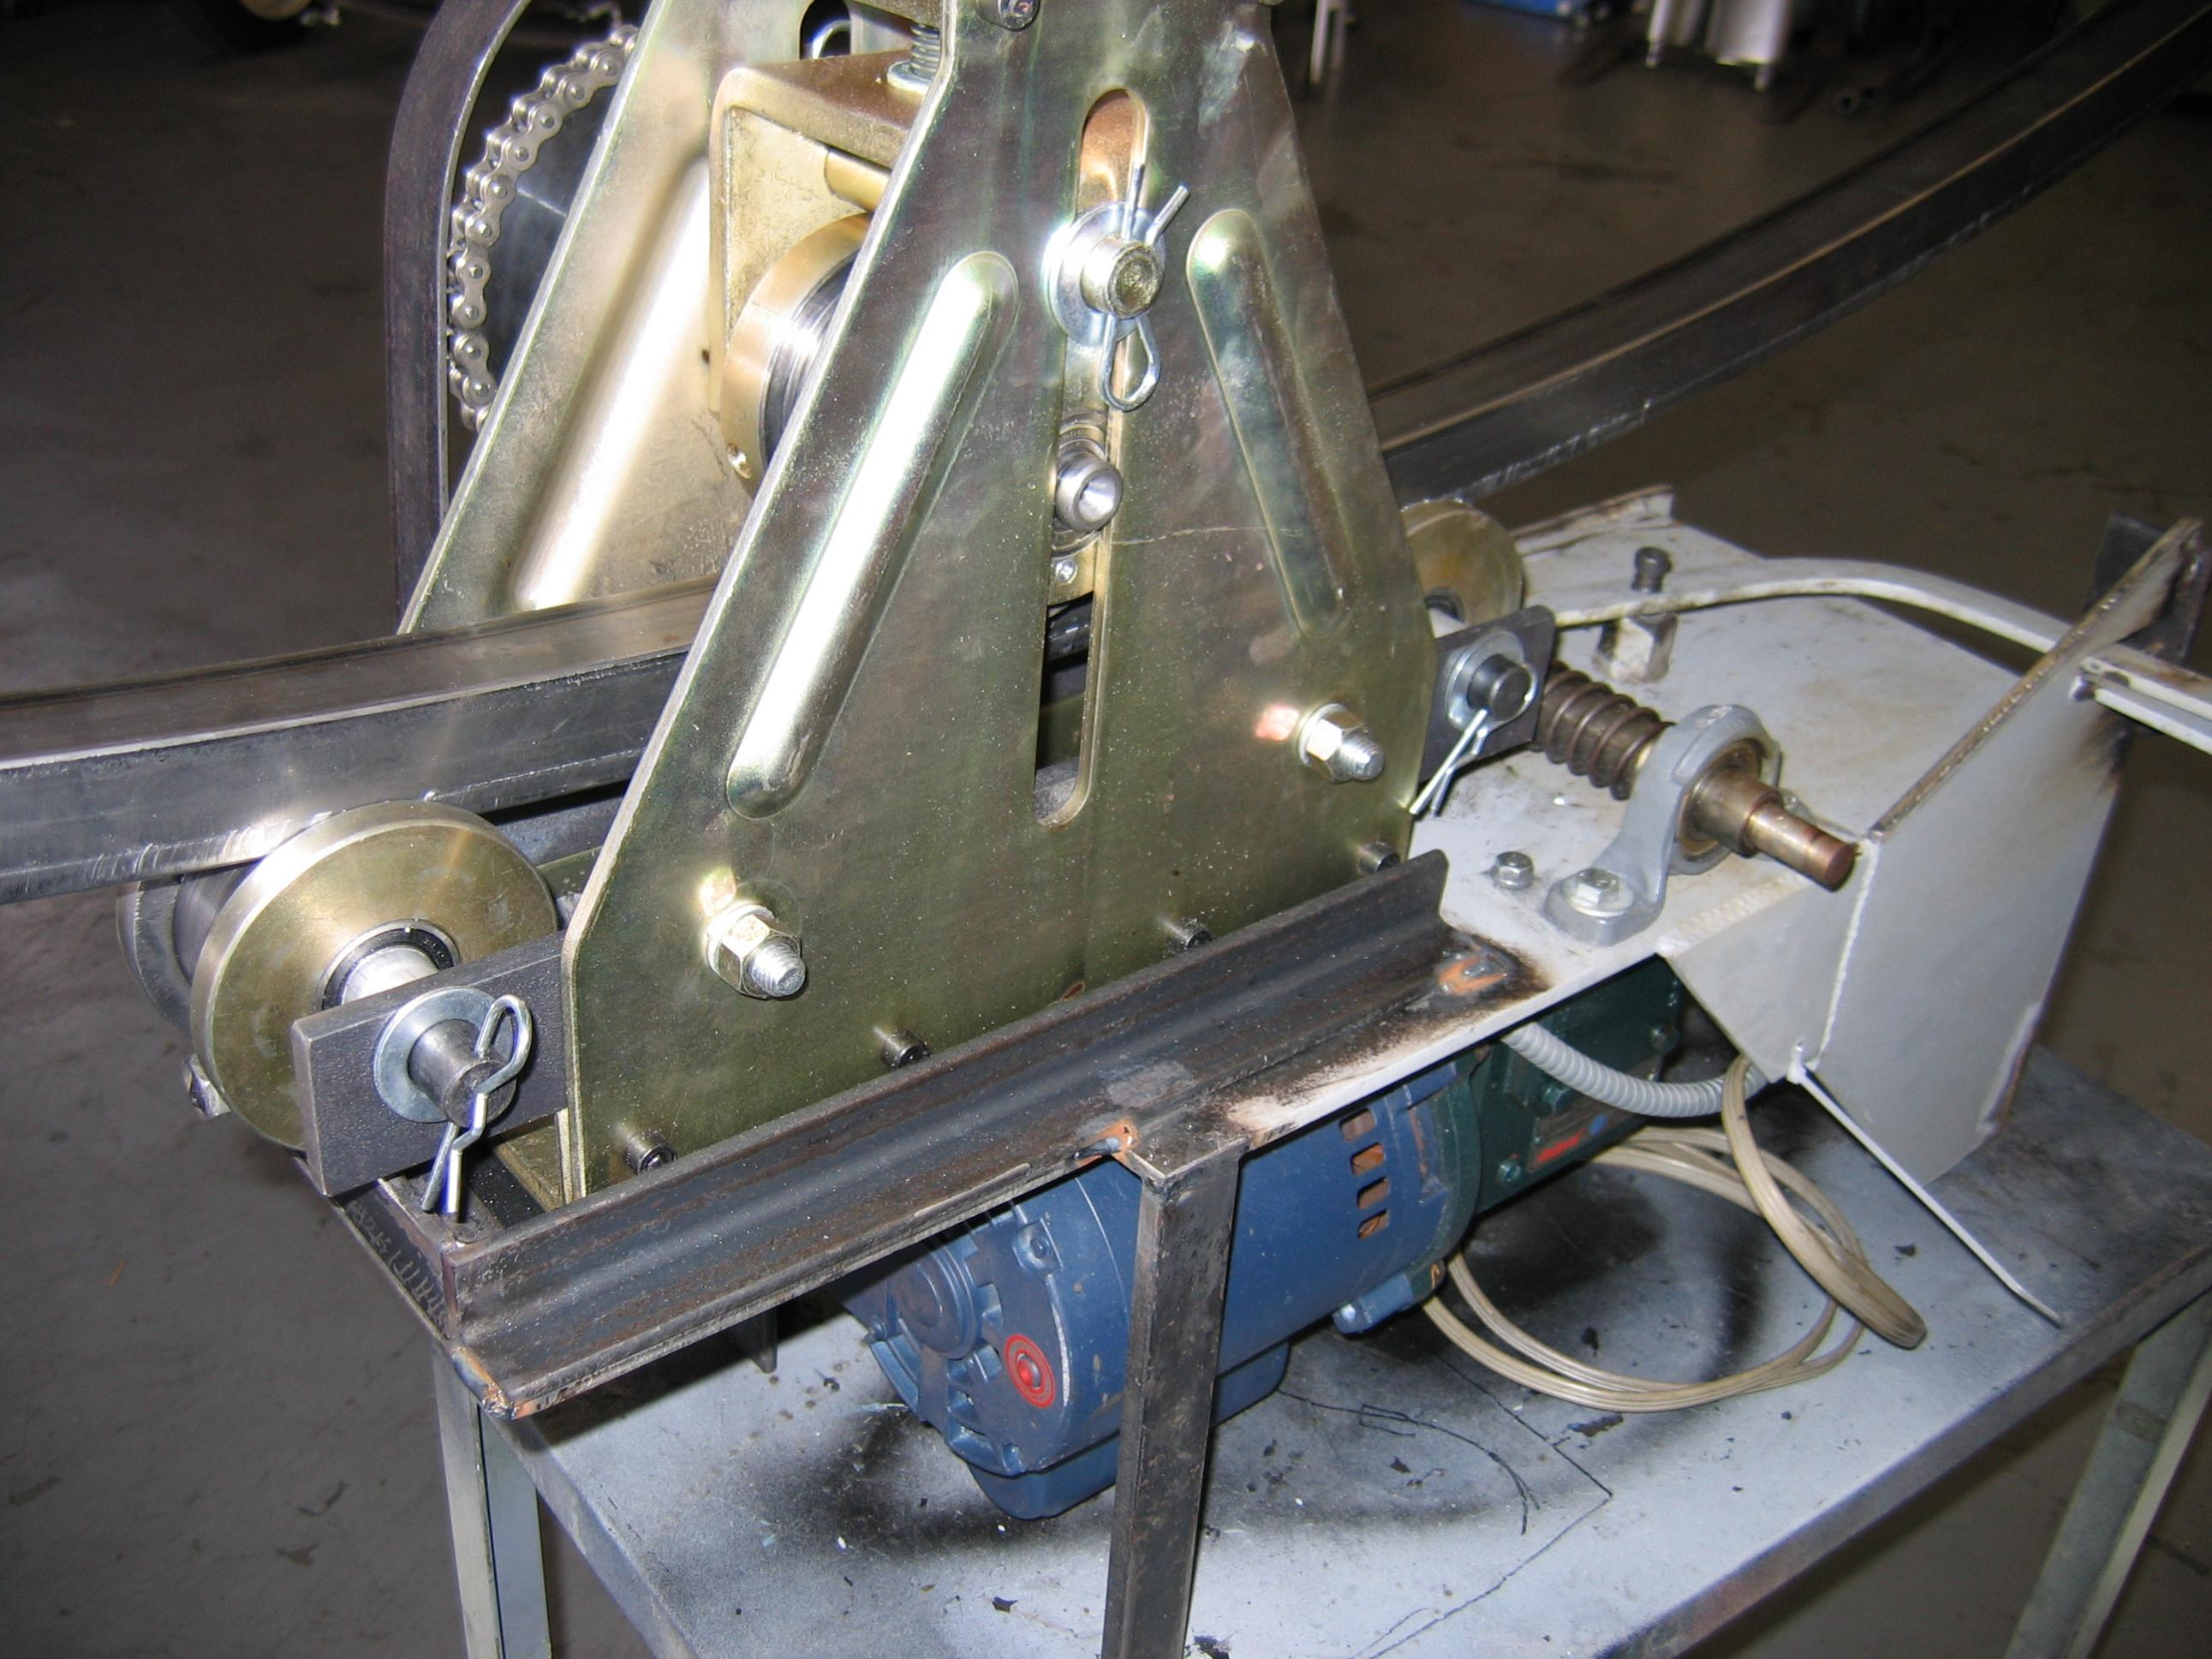 Tube Roller / Tubing Roller Harbor Freight Question | The